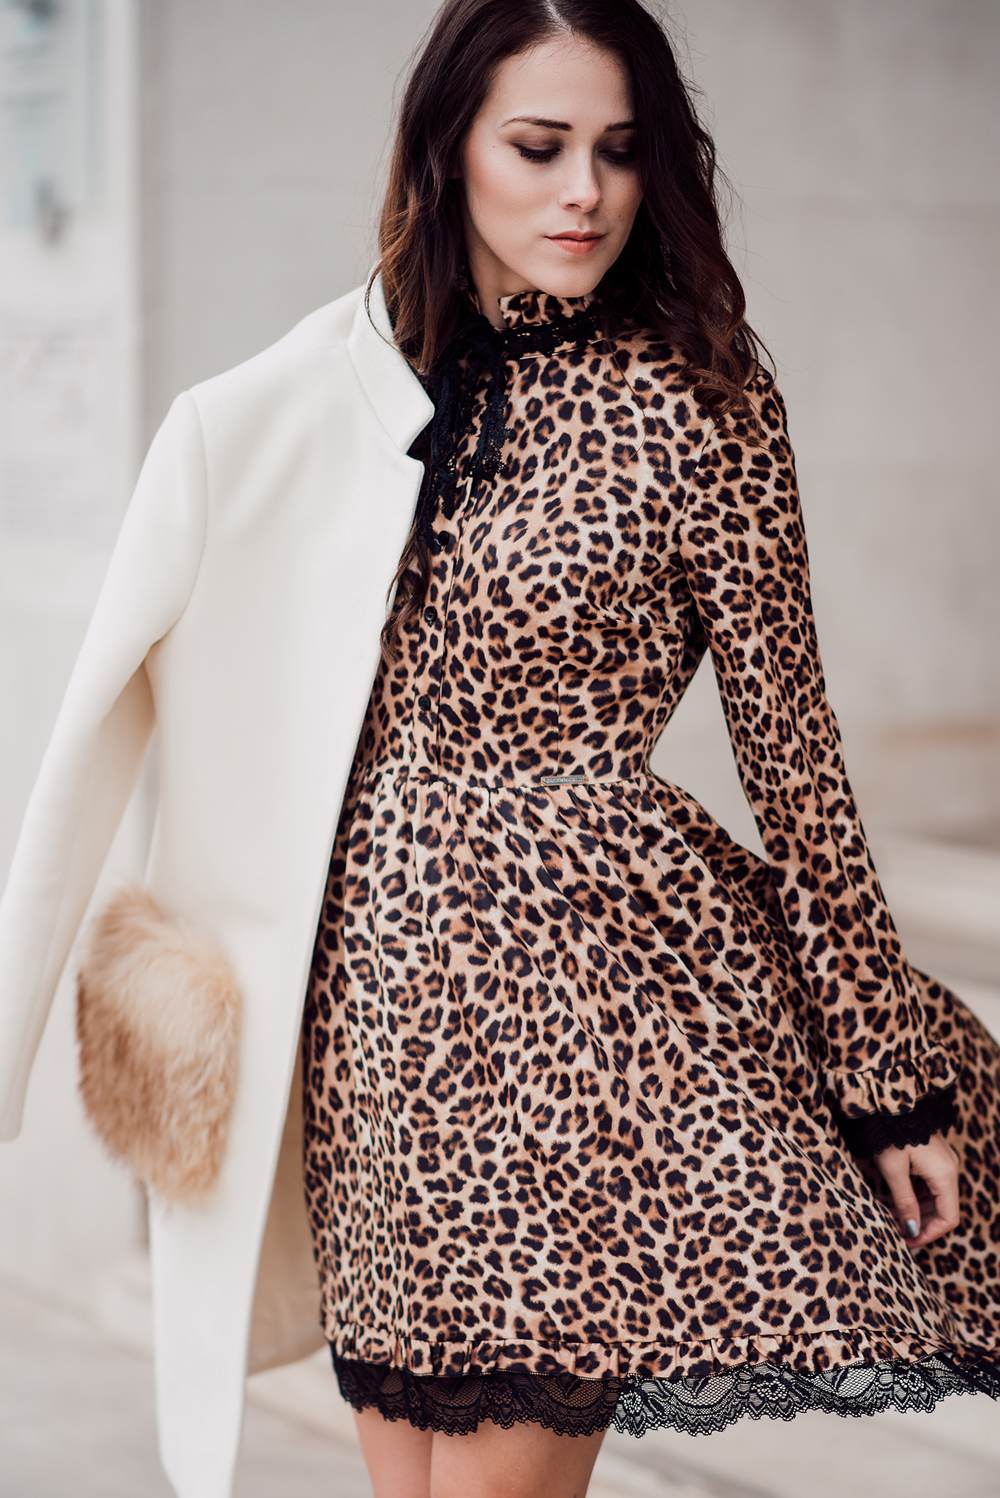 eva-ahacevcic_love-eva_terminal3_ootd_leopard-print_dress_fashion-blogger-14